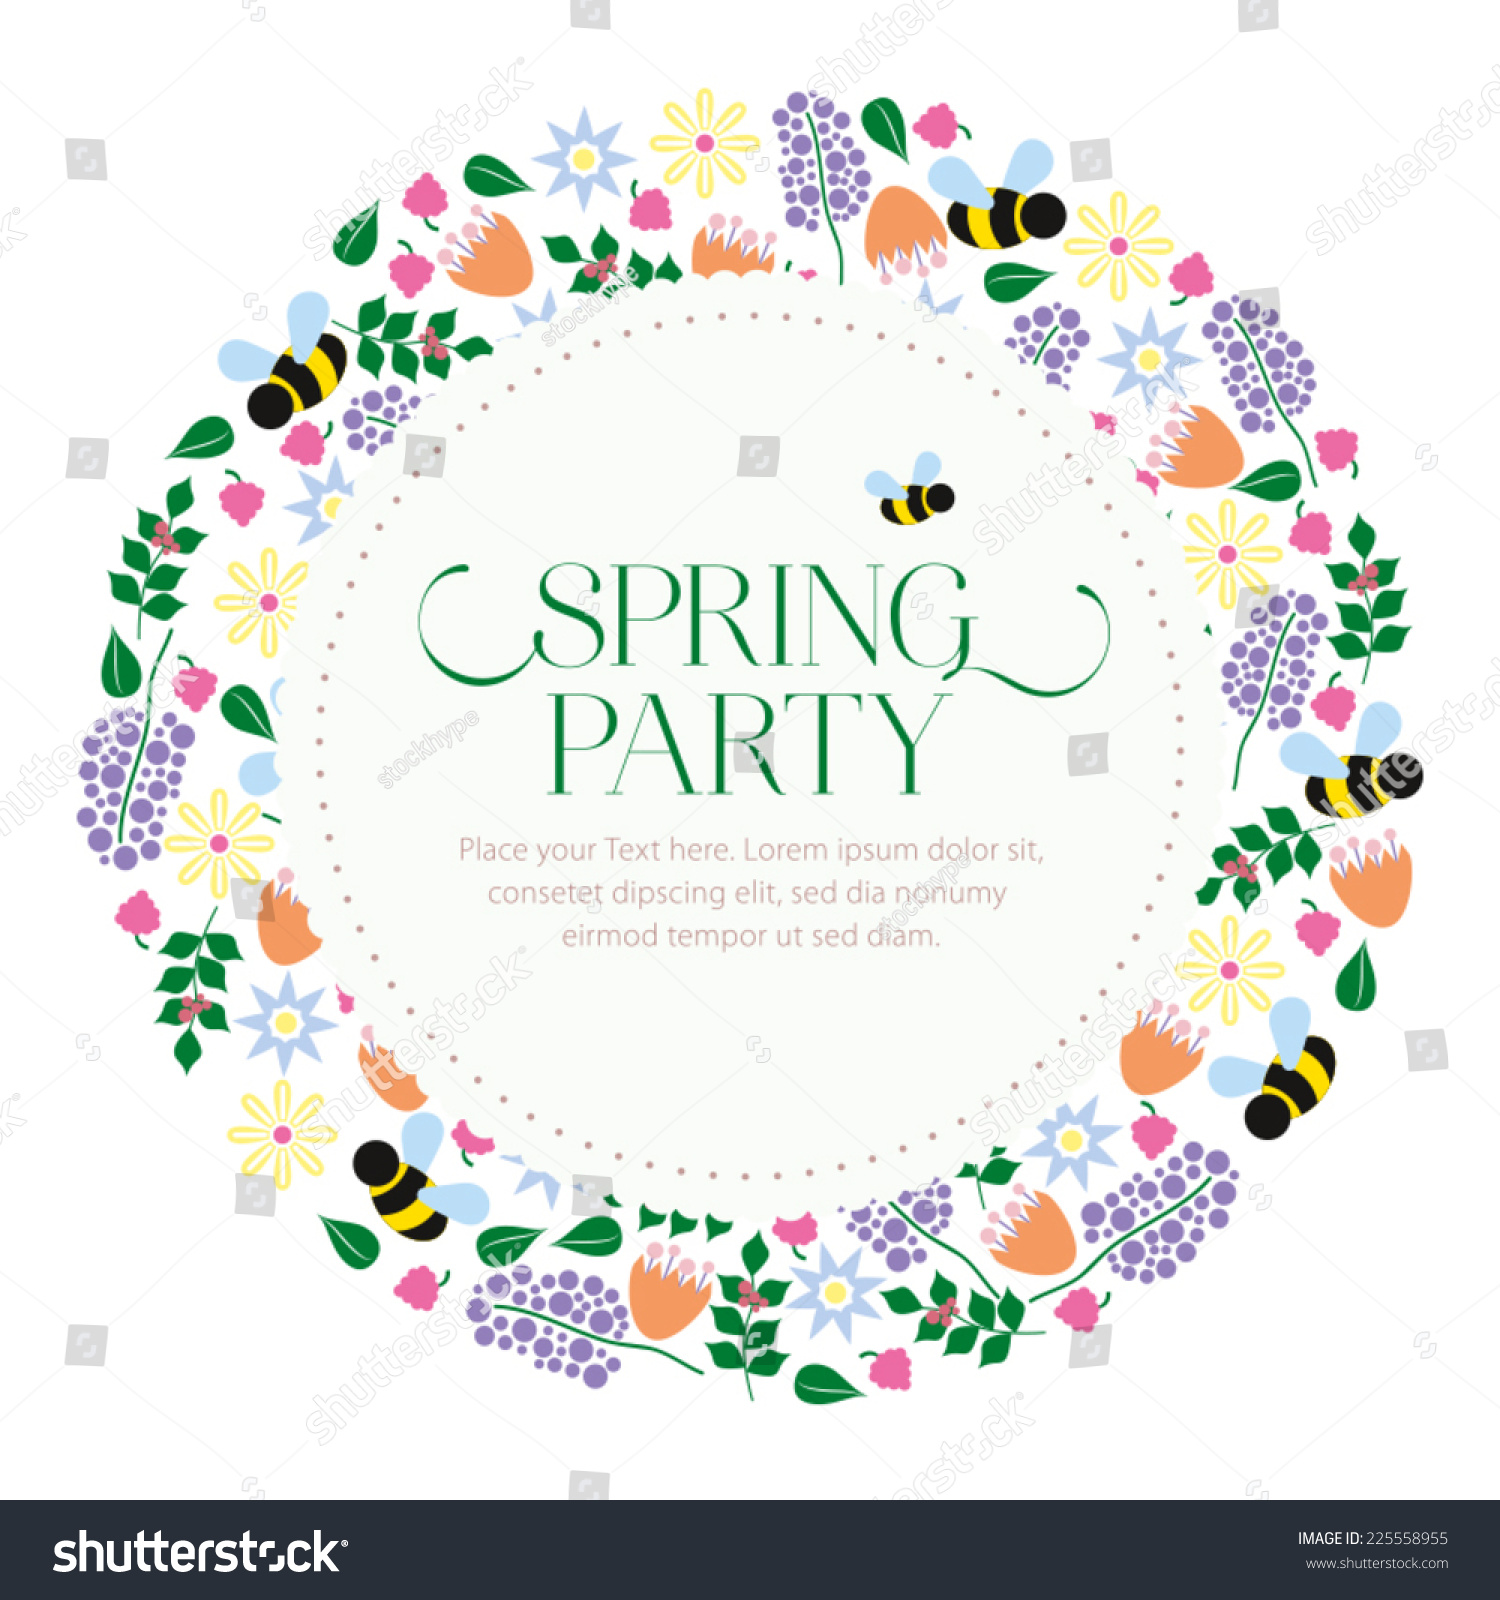 Spring Party Invitation Card Text Flower Stock Vector Royalty Free